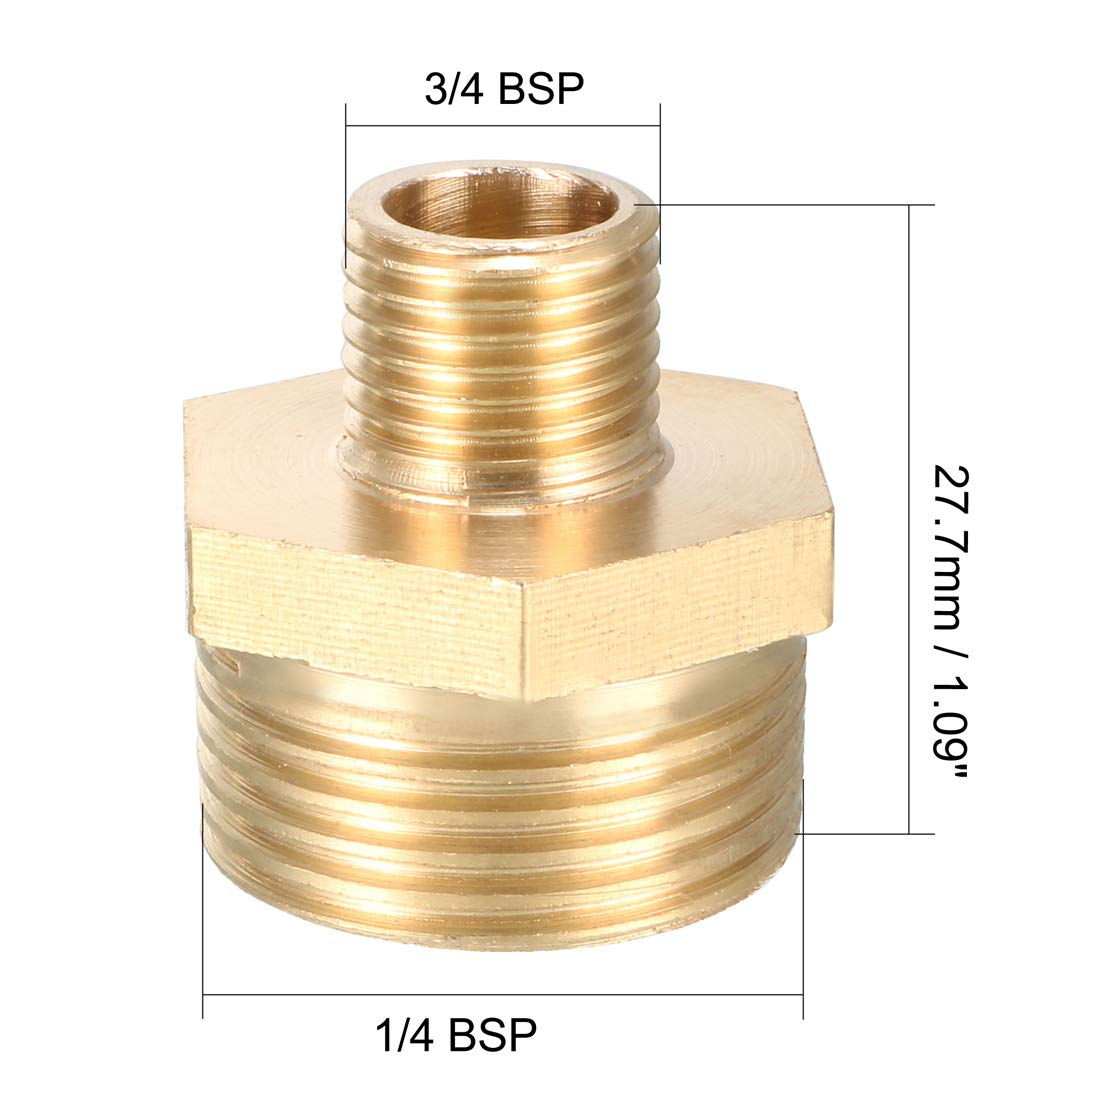 uxcell Brass Pipe Fitting Reducing Hex Nipple 3//4 BSP Male X 1//4 BSP Male Adapter